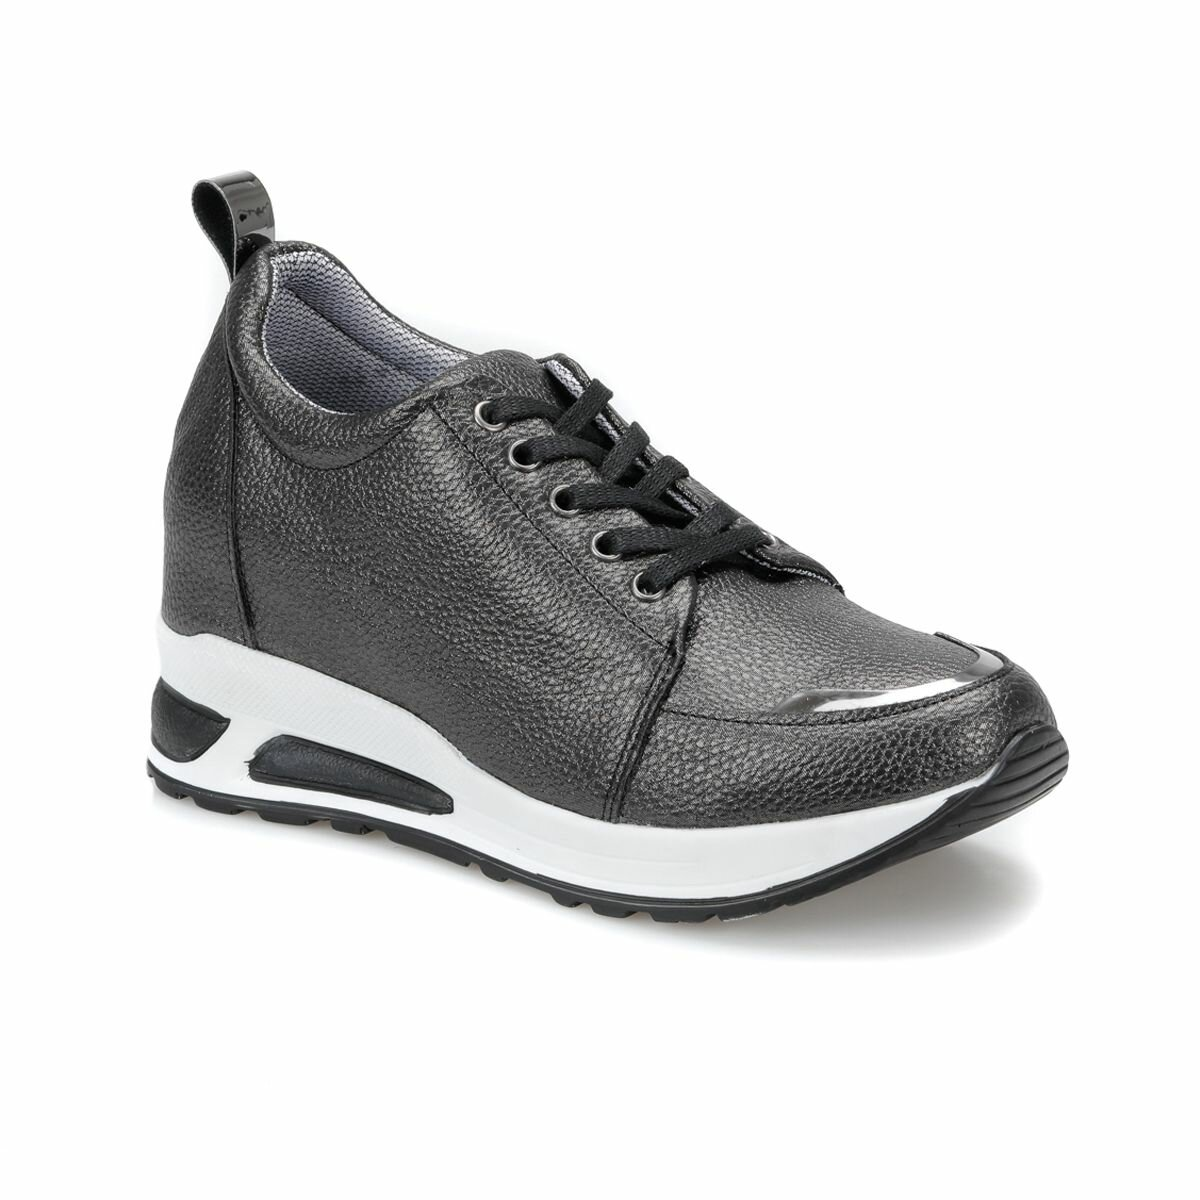 FLO HAMO83Z SKIN Anthracite Women Shoes BUTIGO